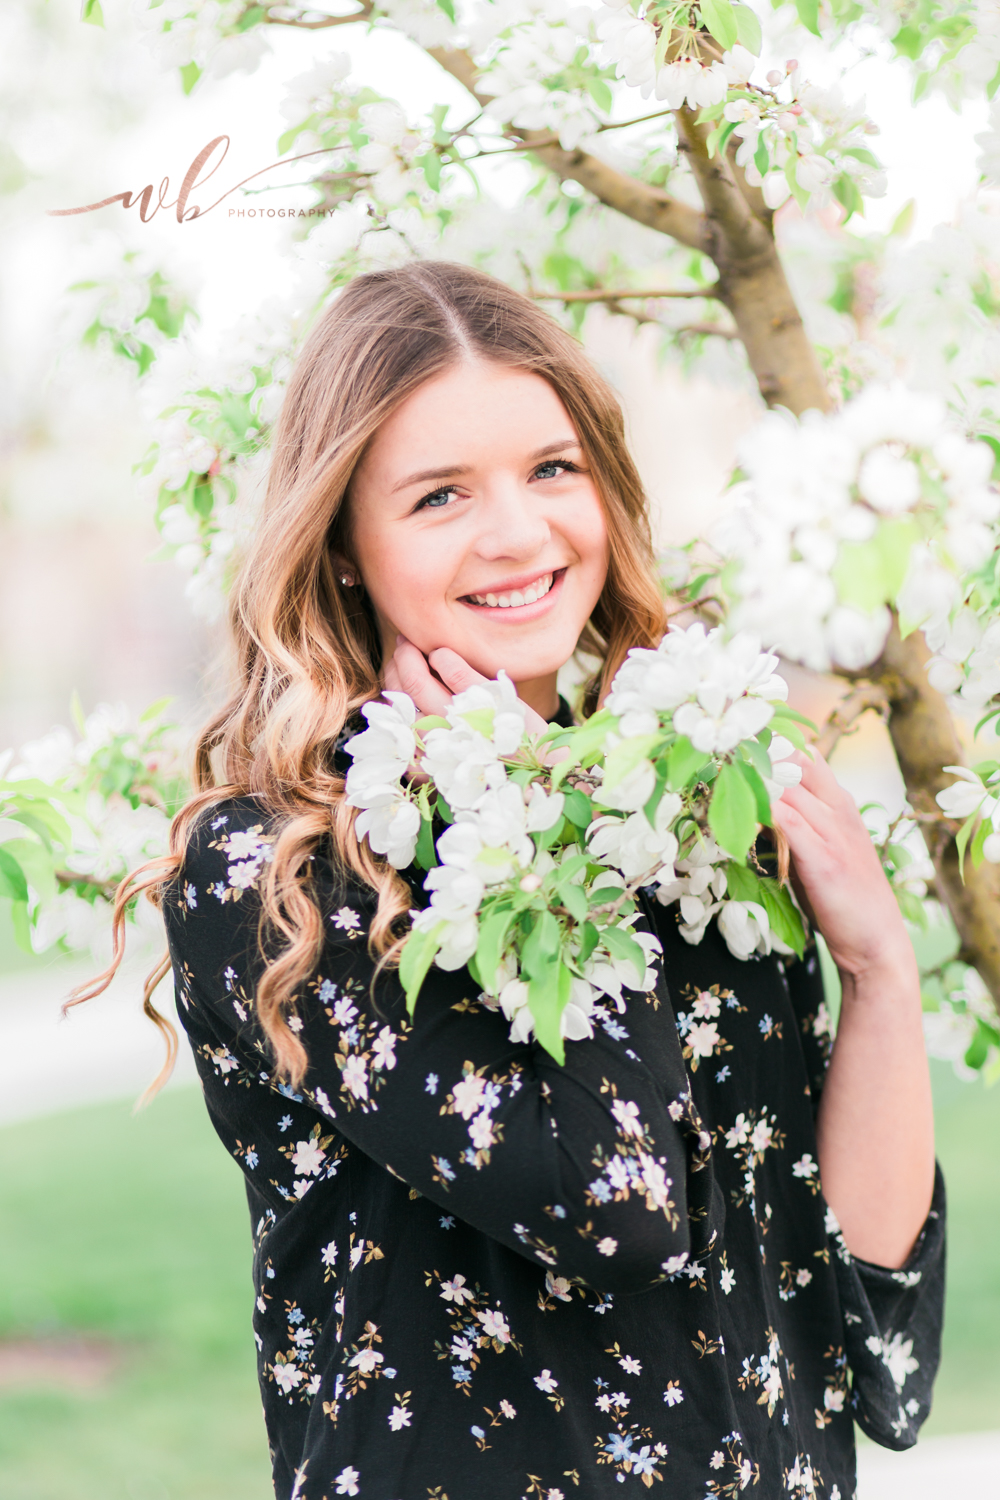 Spring photos in Utah County